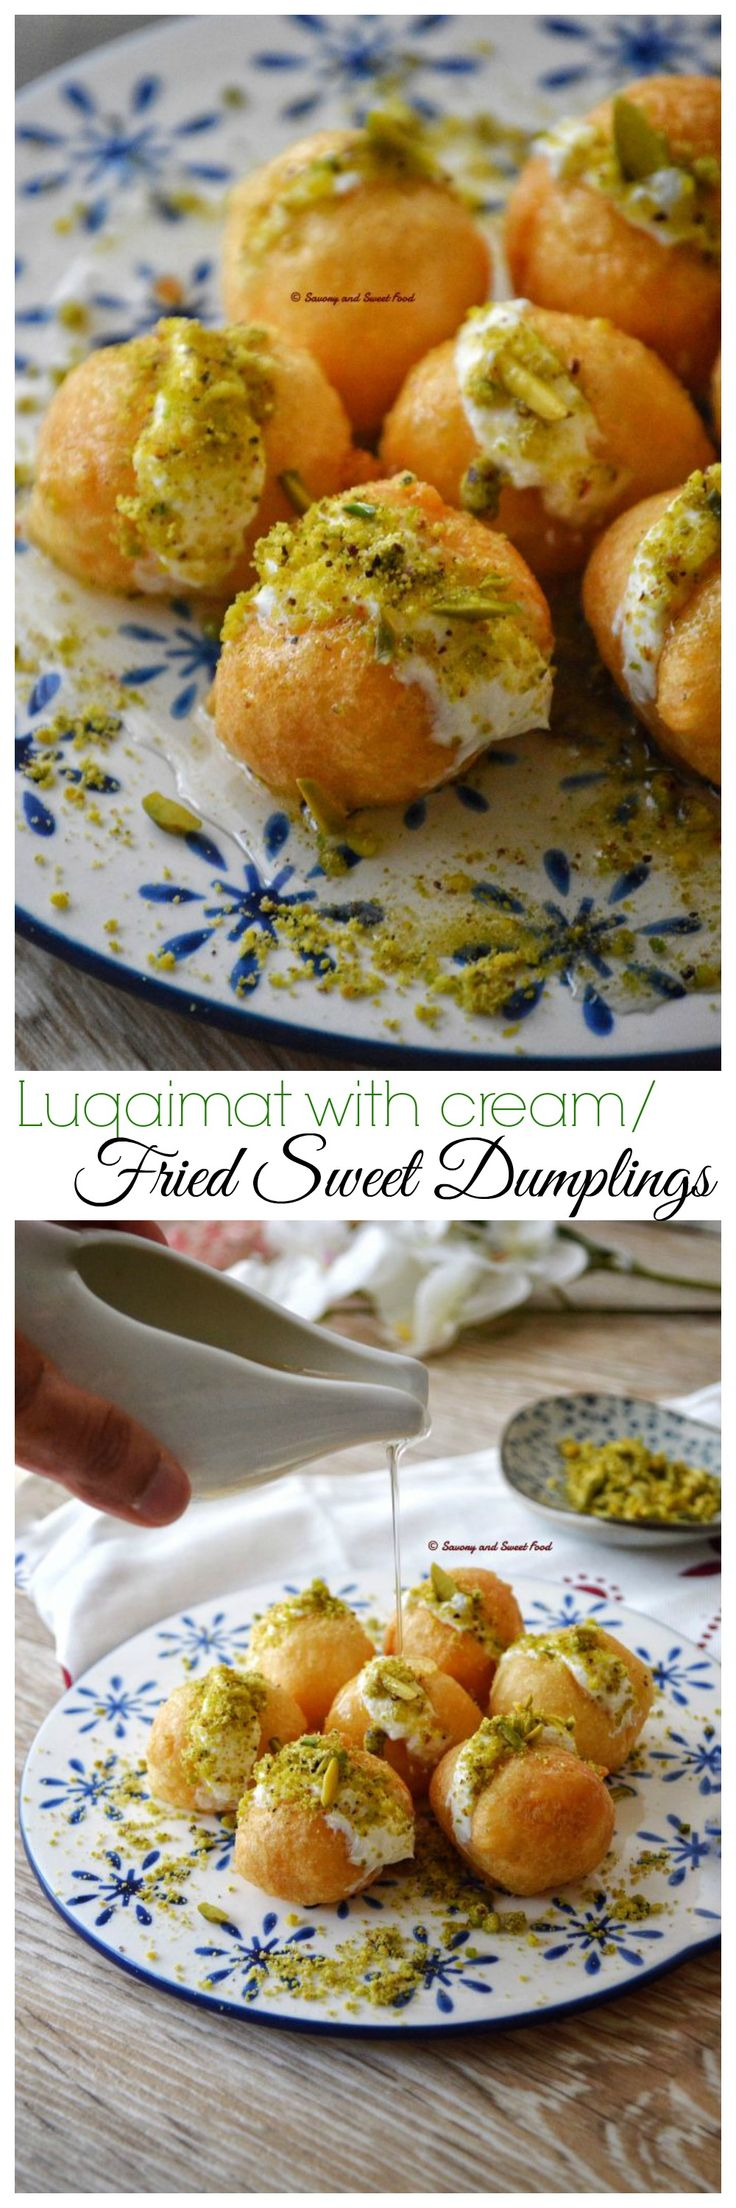 Luqaimat with Cream is a puffy sweet fried dumpling, dipped in sugar syrup and served with thick cream and pistachios.